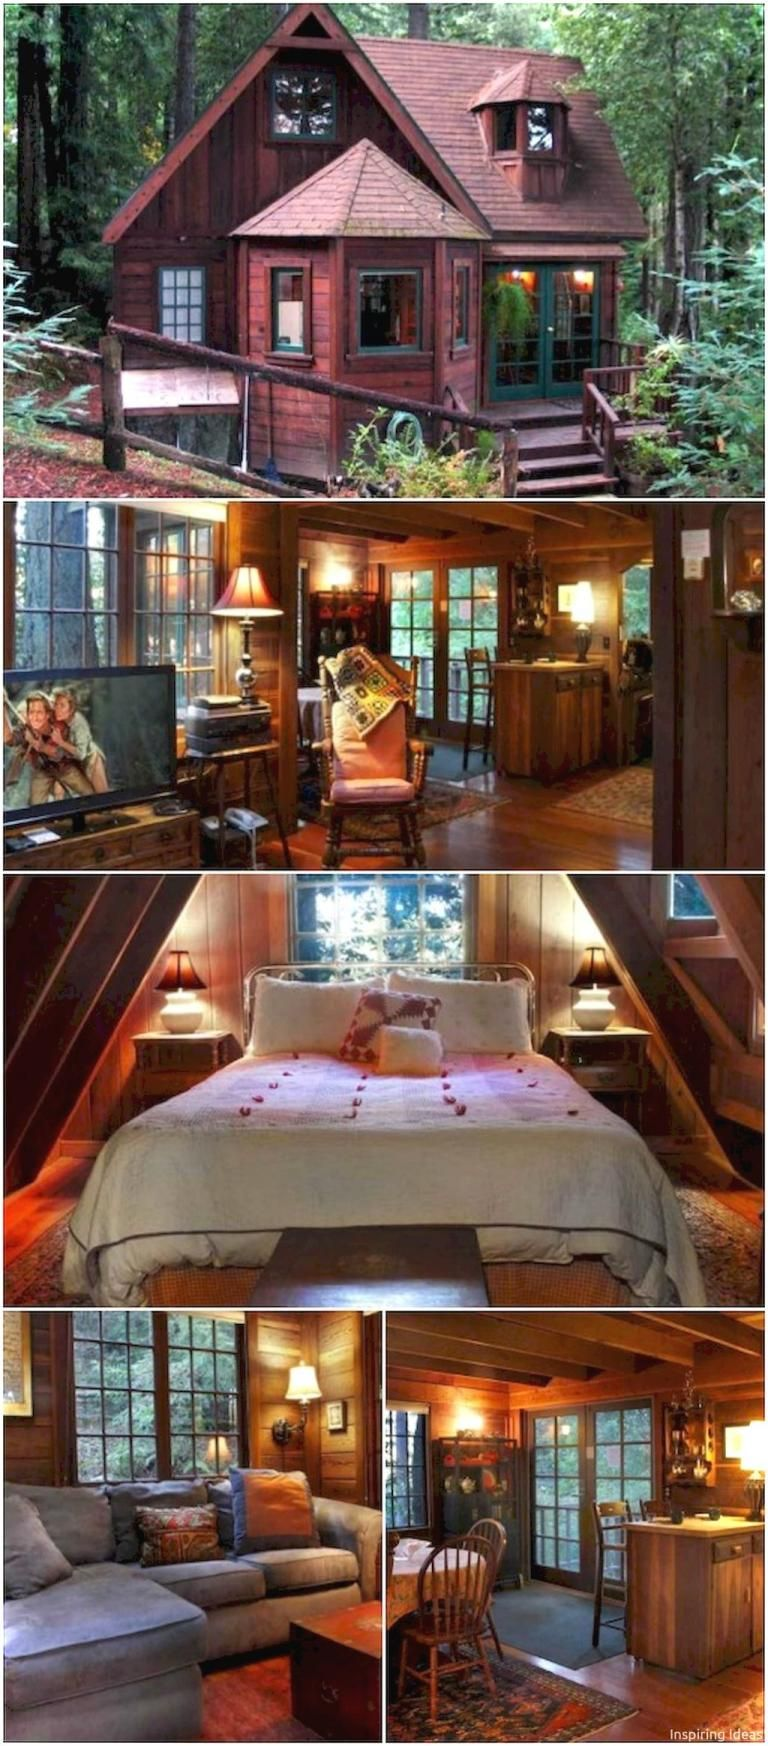 Awesome tiny house interior design ideas also all home decor rh pinterest